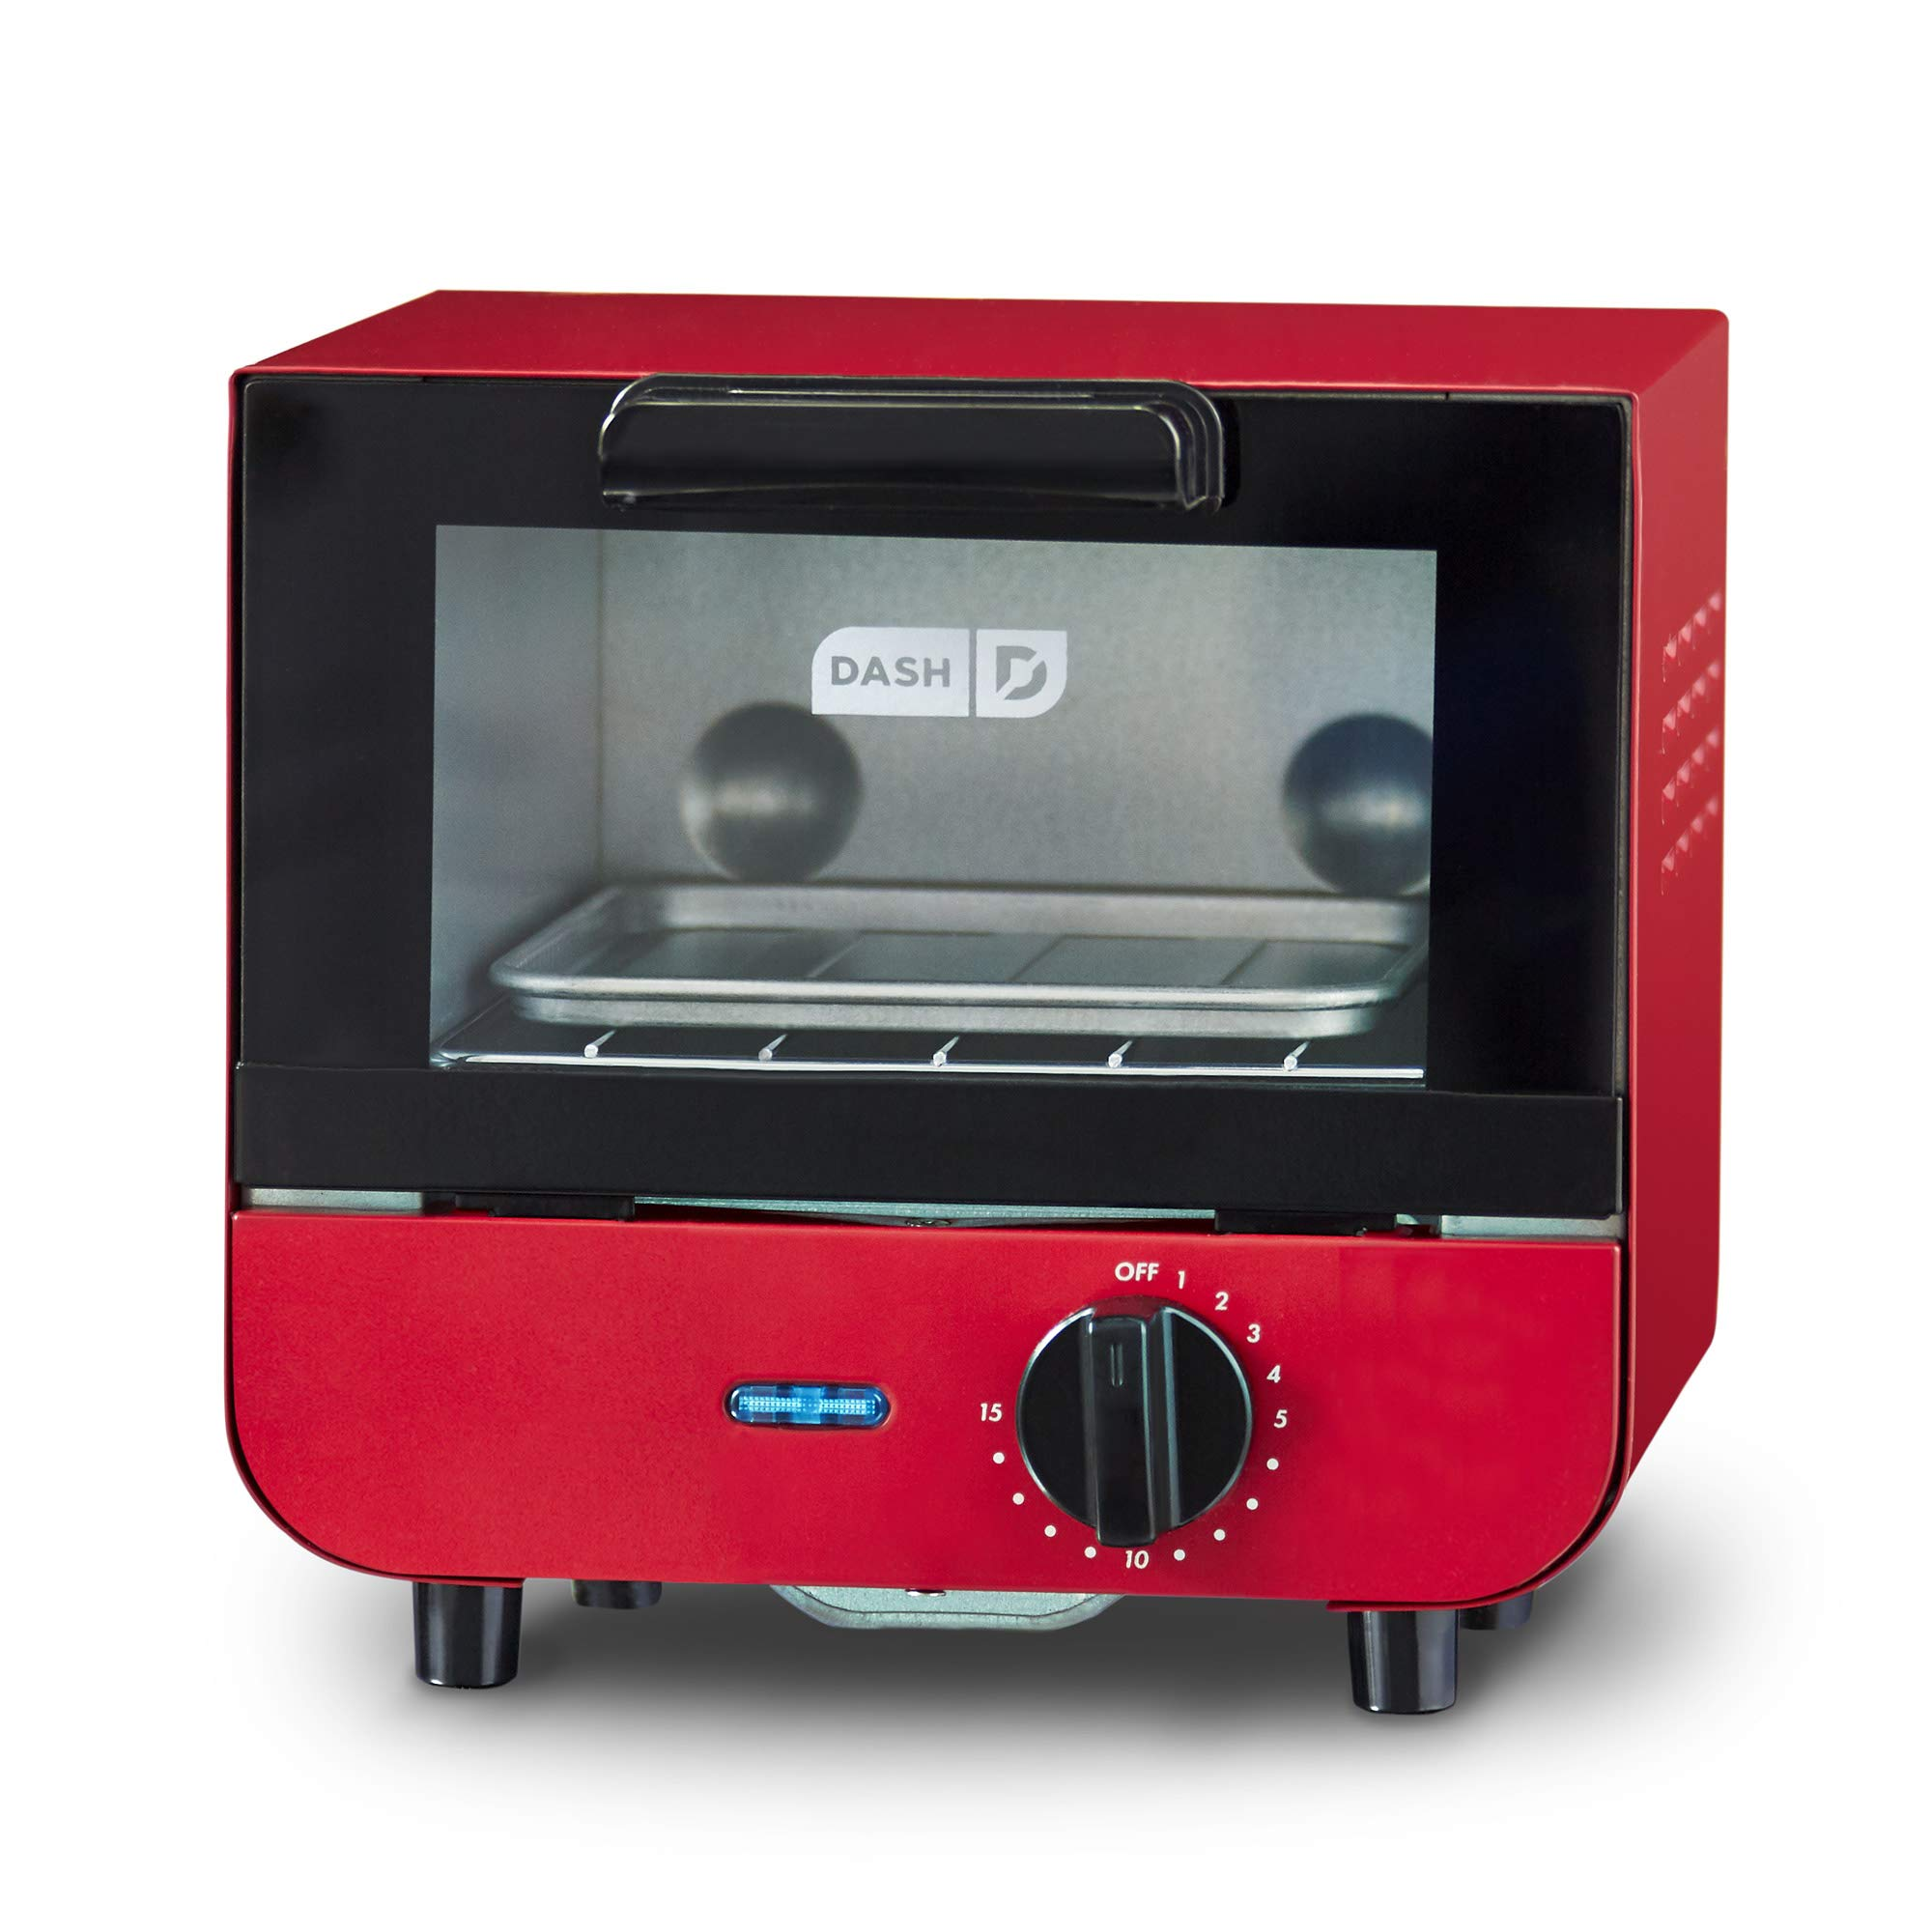 Dash DMTO100GBRD04 Mini Toaster Oven Cooker for for Bread, Bagels, Cookies, Pizza, Paninis & More with Baking Tray, Rack, Auto Shut Off Feature, Red by DASH